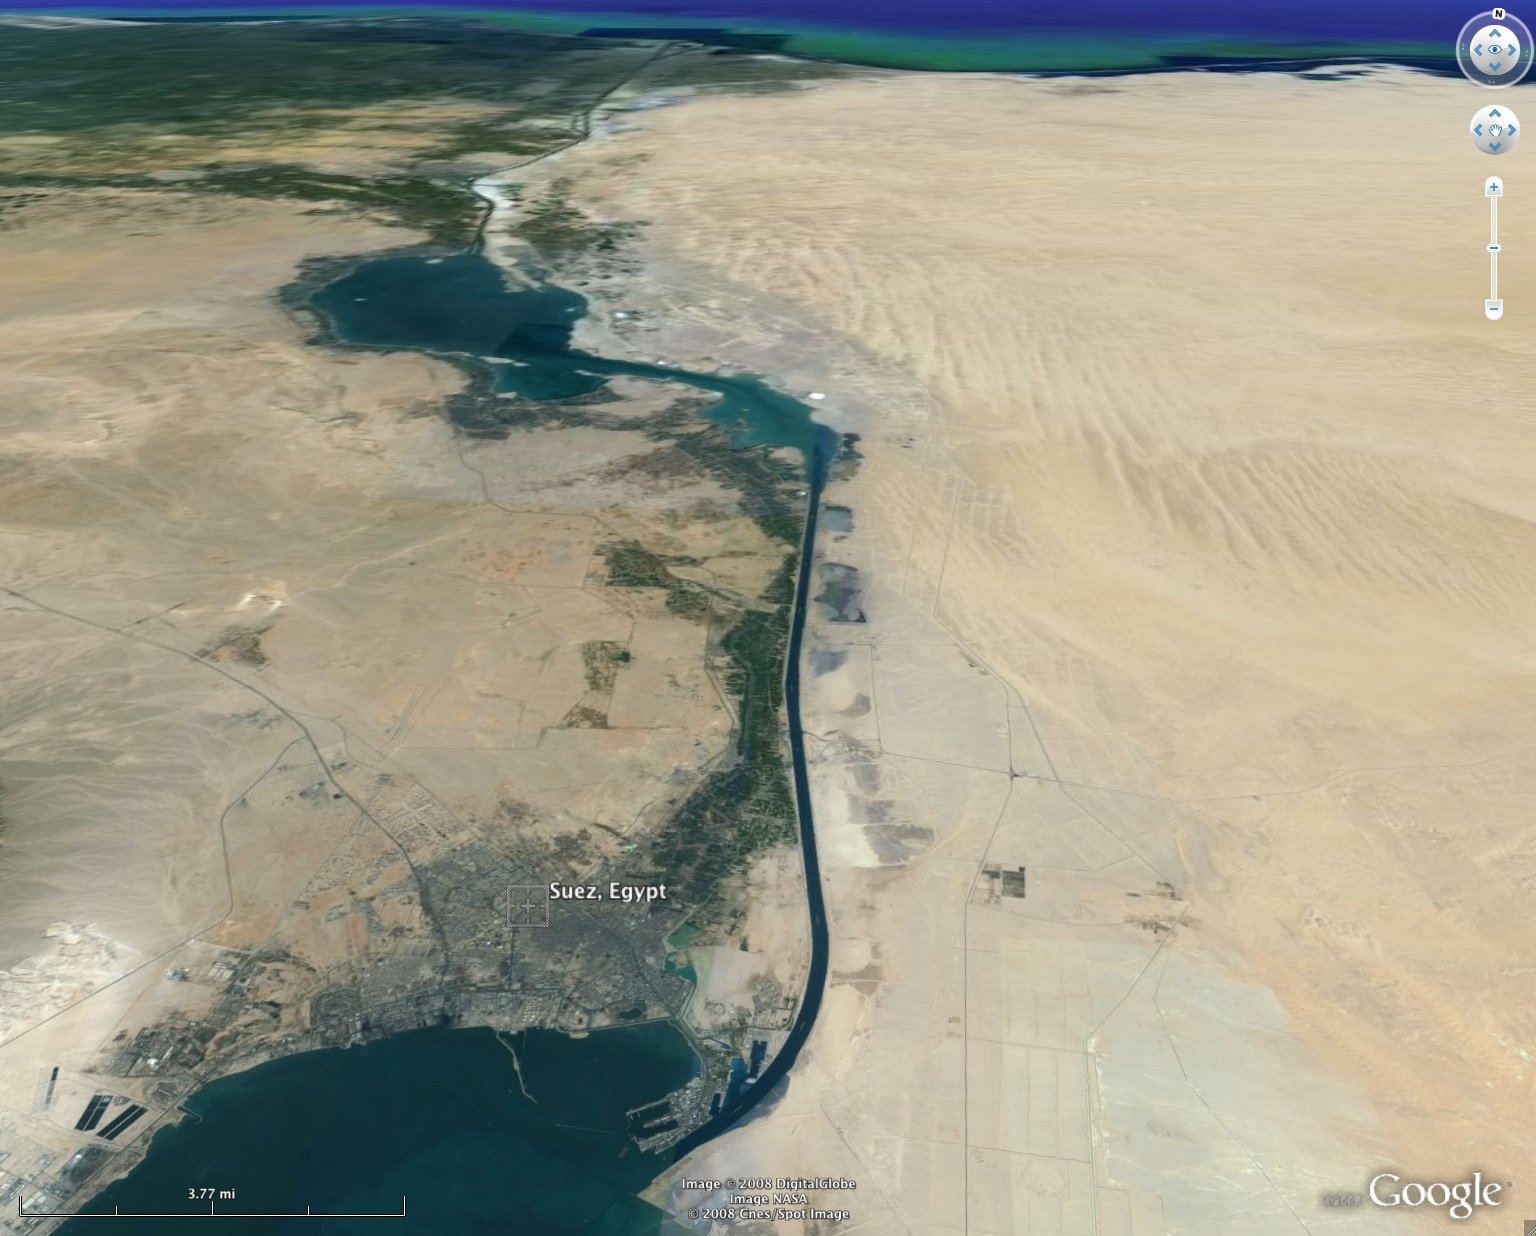 suez canal The variation of sea level at 11 stations distributed along the suez canal was  studied during the period from 1980 to 1986 the ranges of variation in daily  mean.